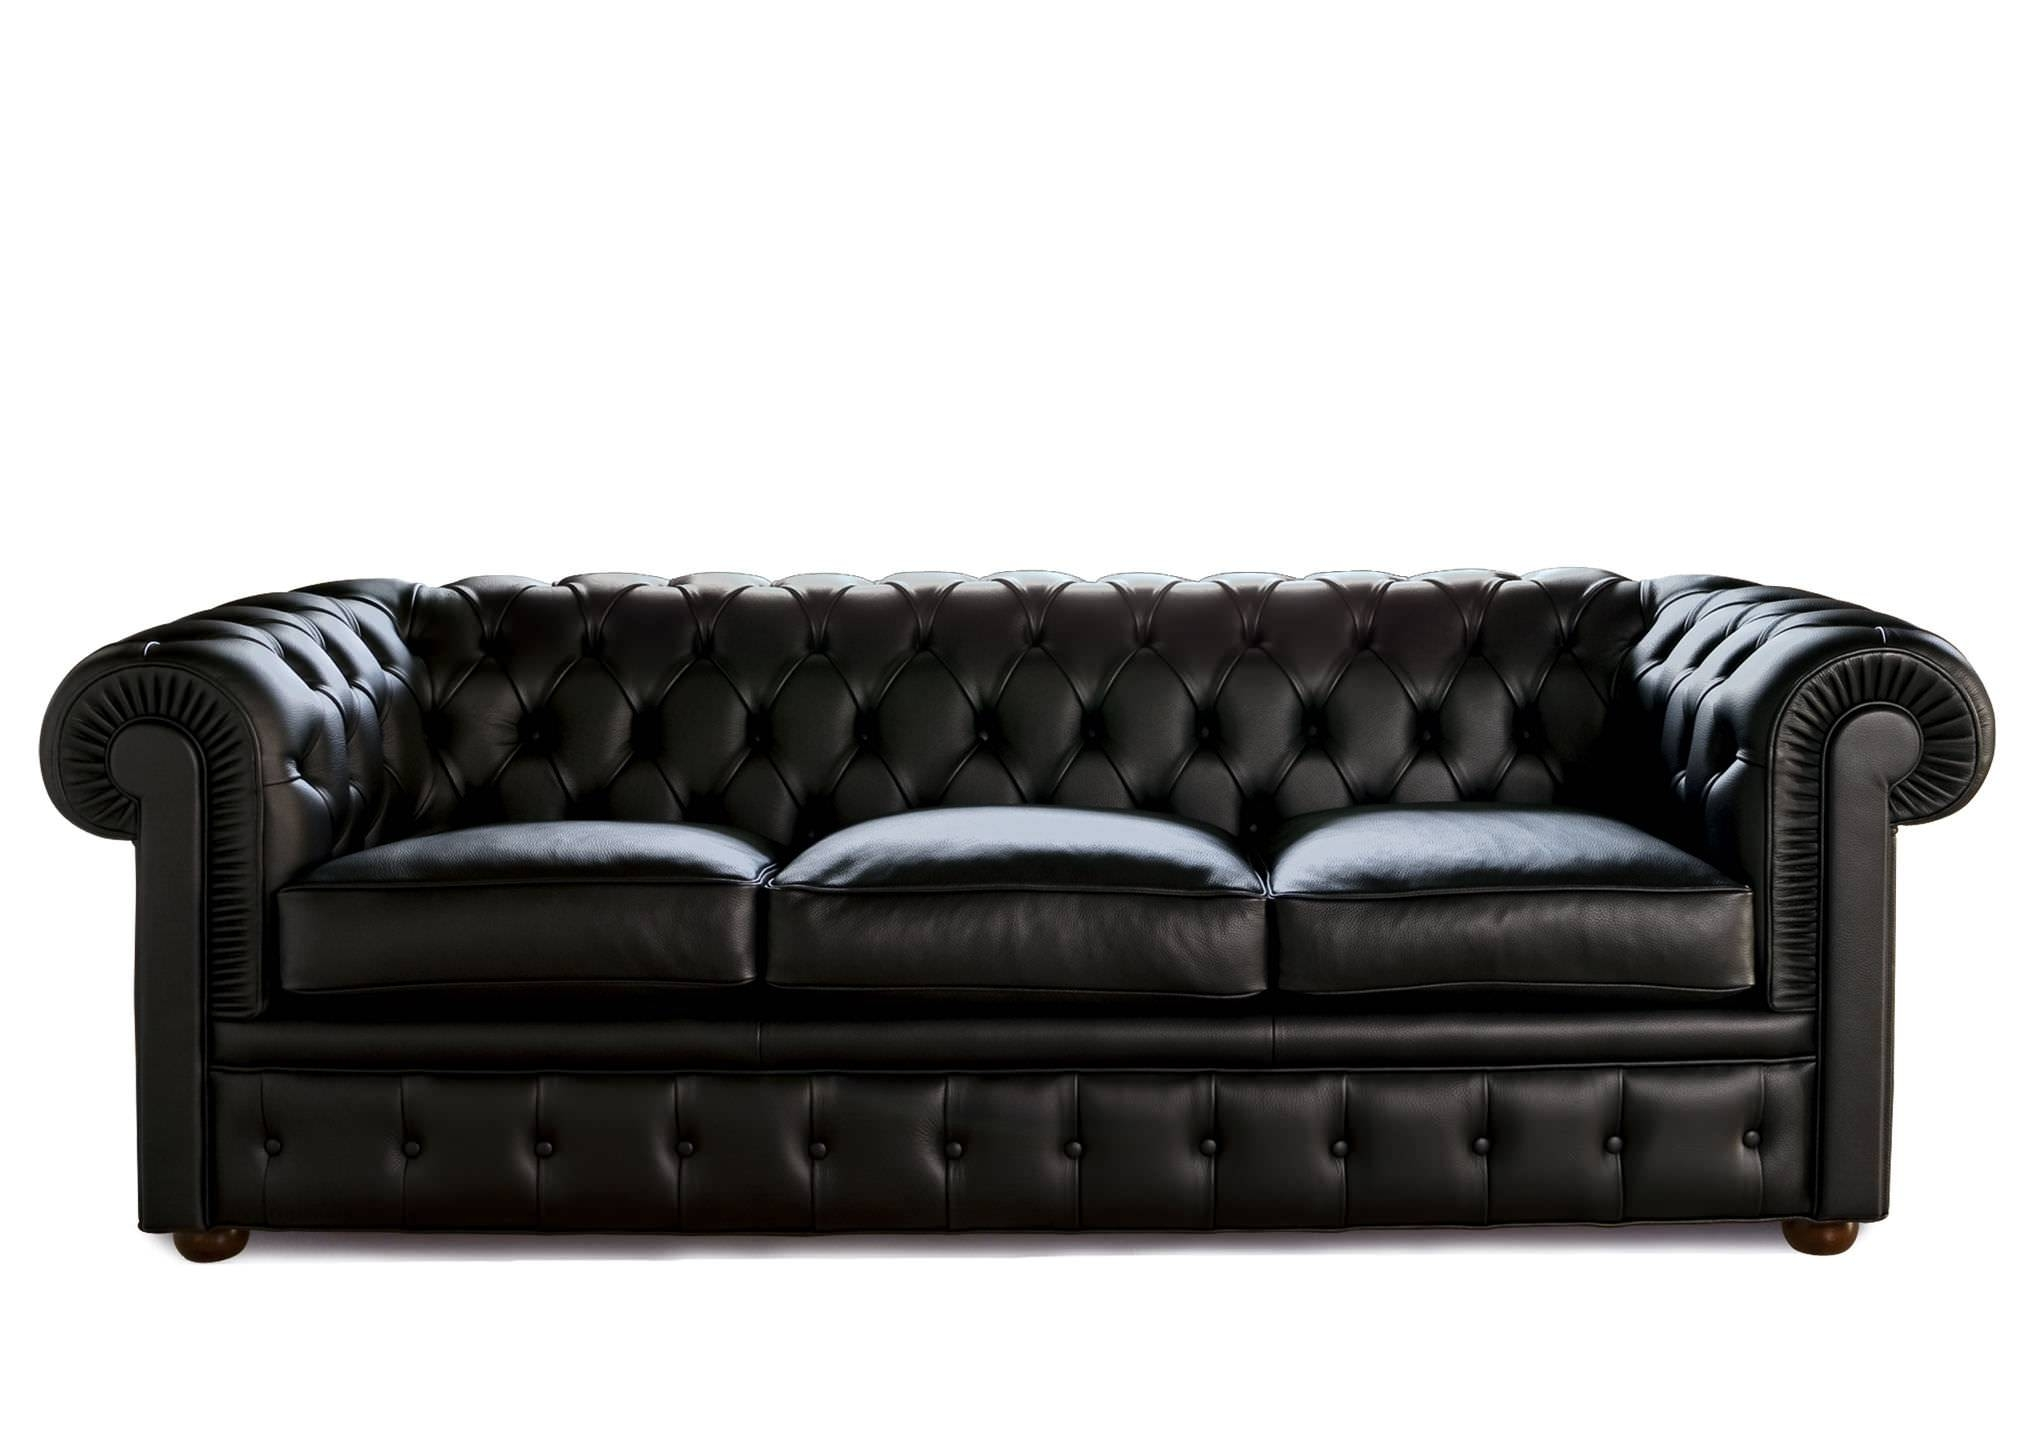 Furniture: Have A Luxury Living Room With The Elegant Chesterfield pertaining to Chesterfield Black Sofas (Image 14 of 30)